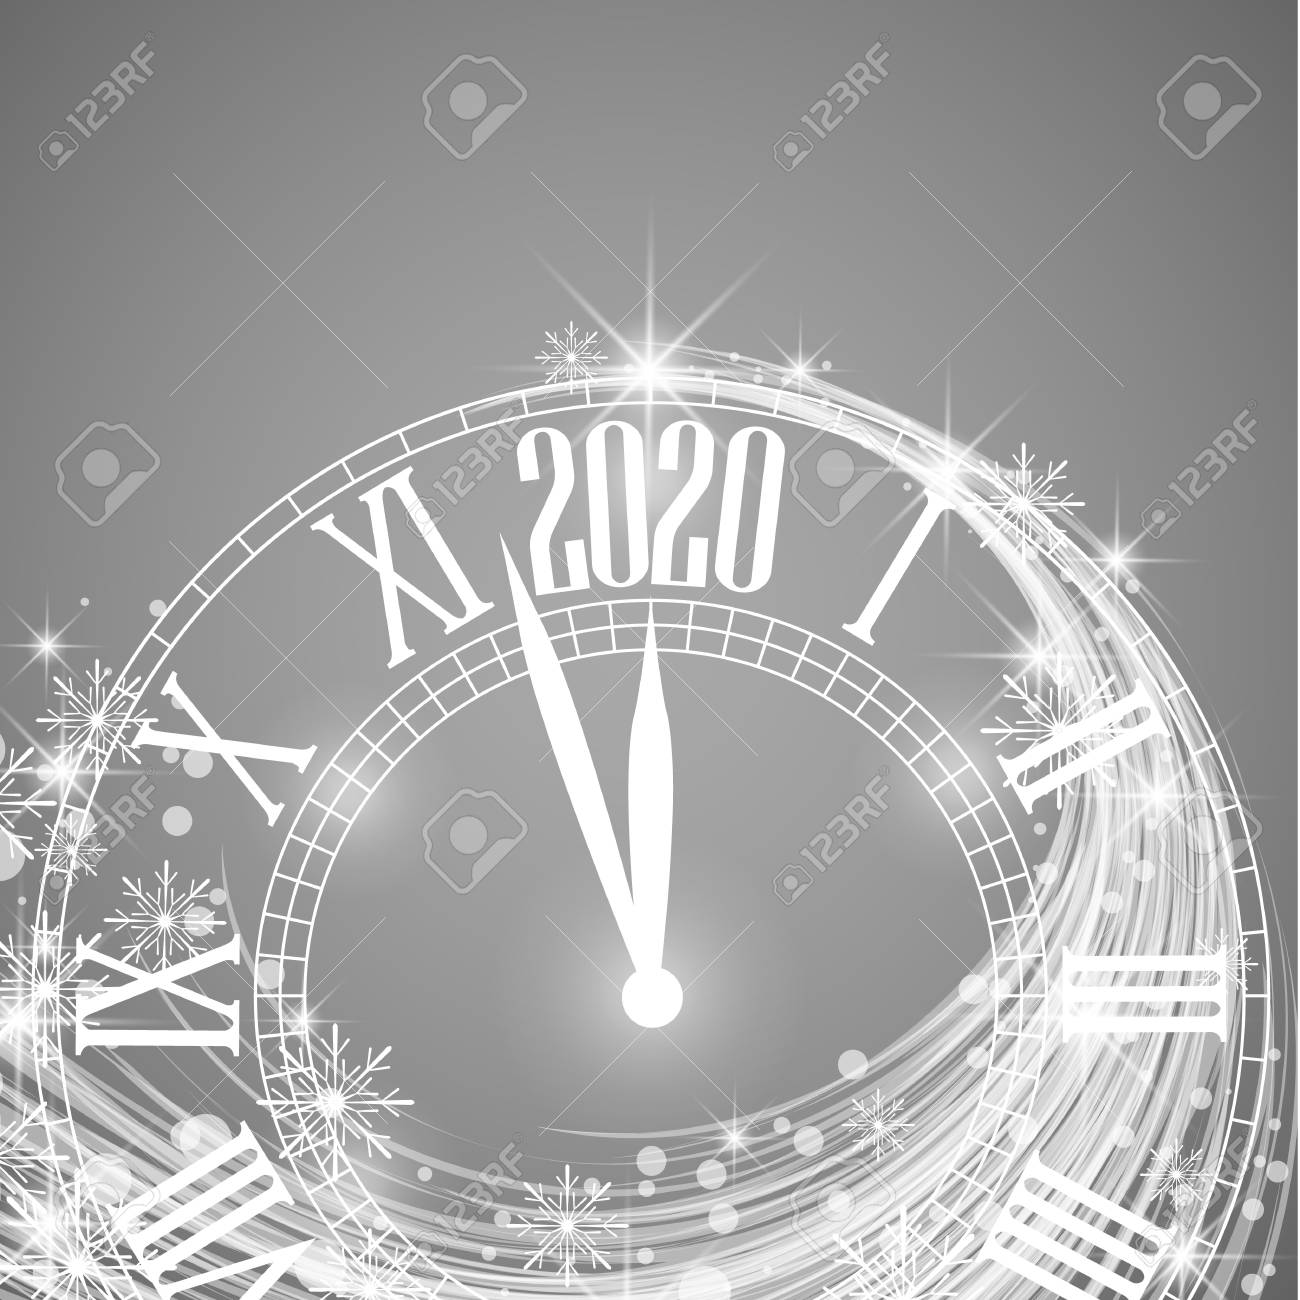 happy new year 2020 vector illustration of new year background with clock showing year stock